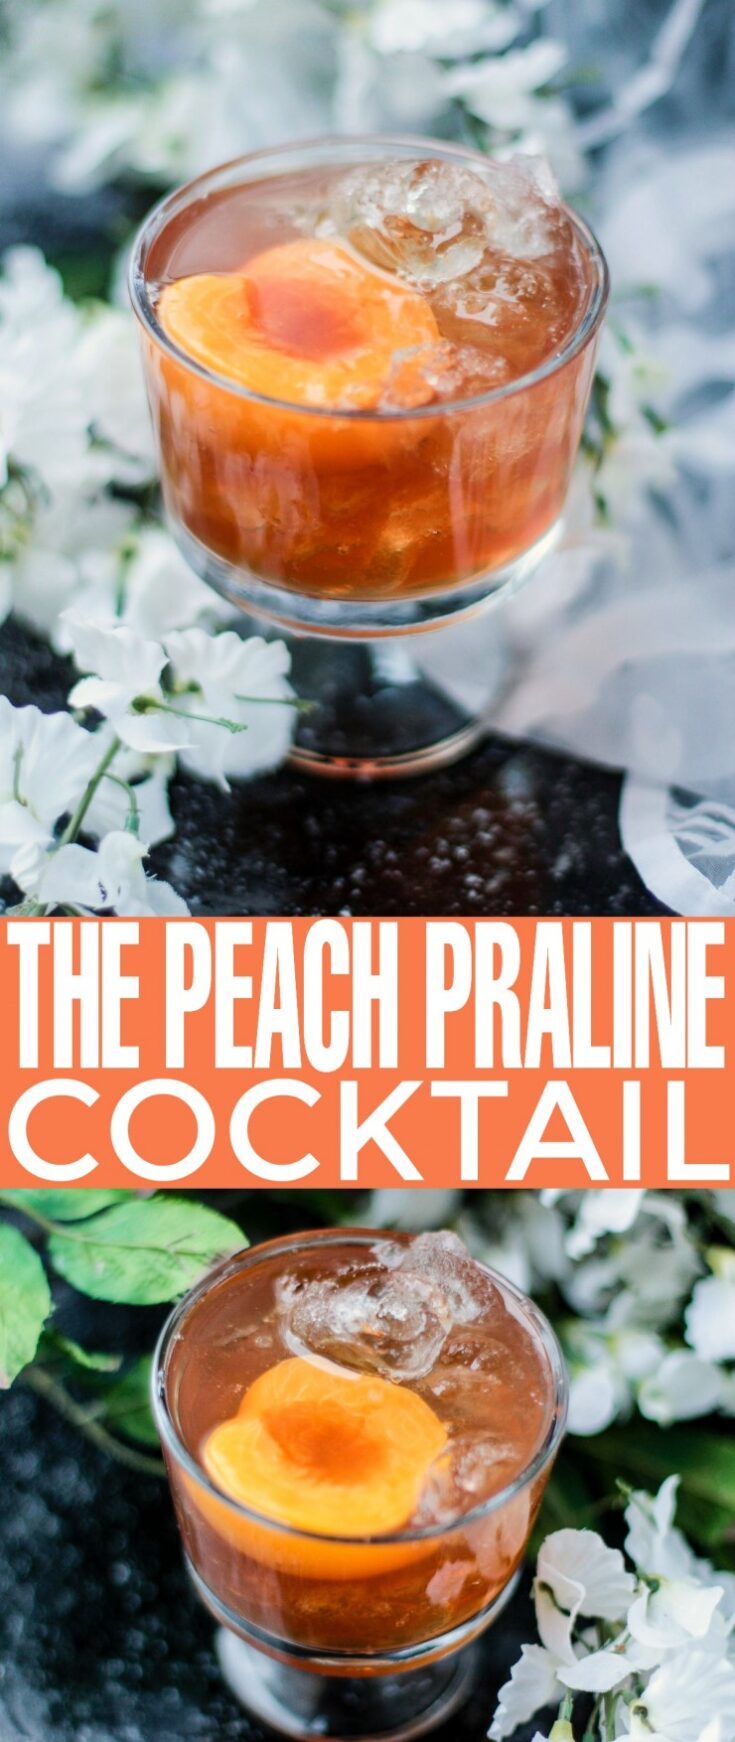 The Peach Praline Cocktail